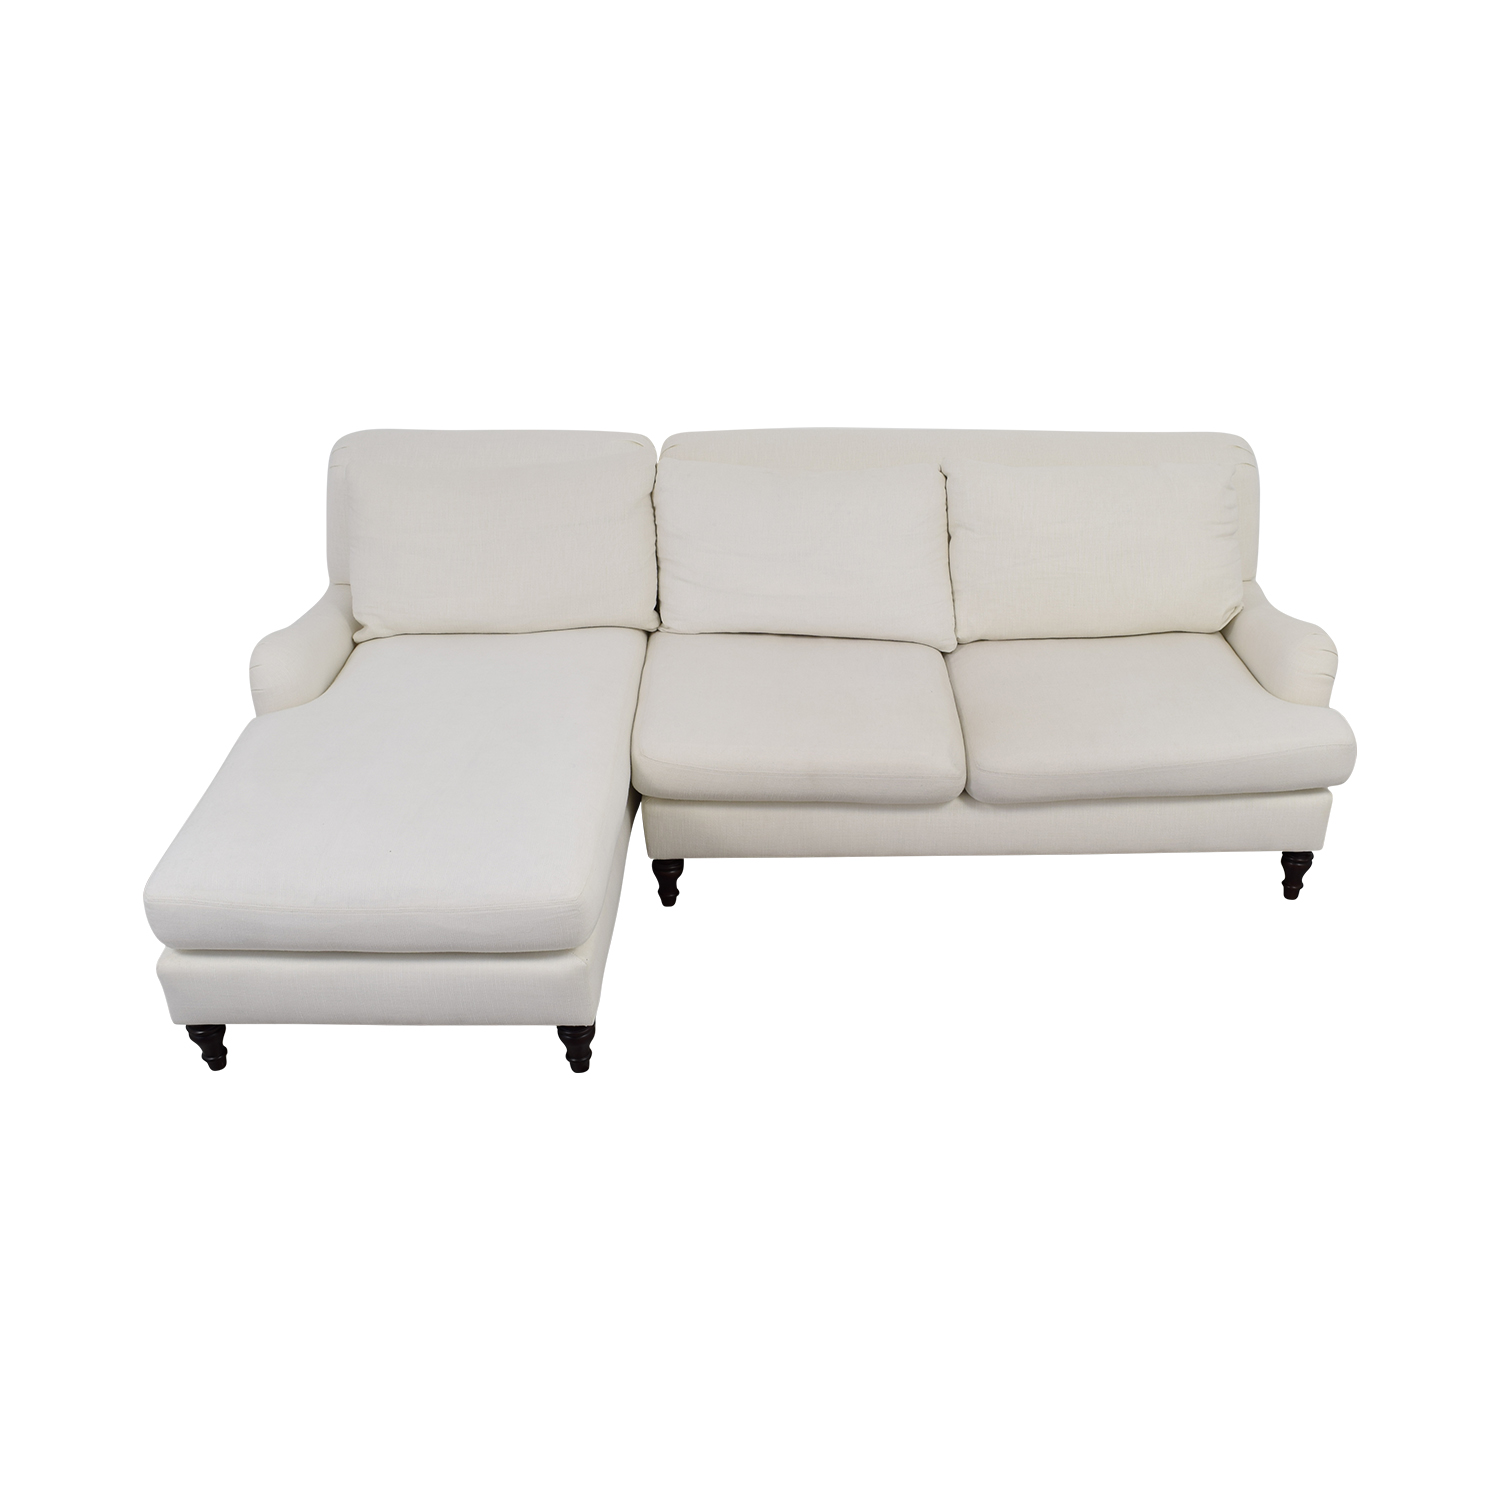 Pottery Barn Pottery Barn Carlisle White Chaise Sectional second hand